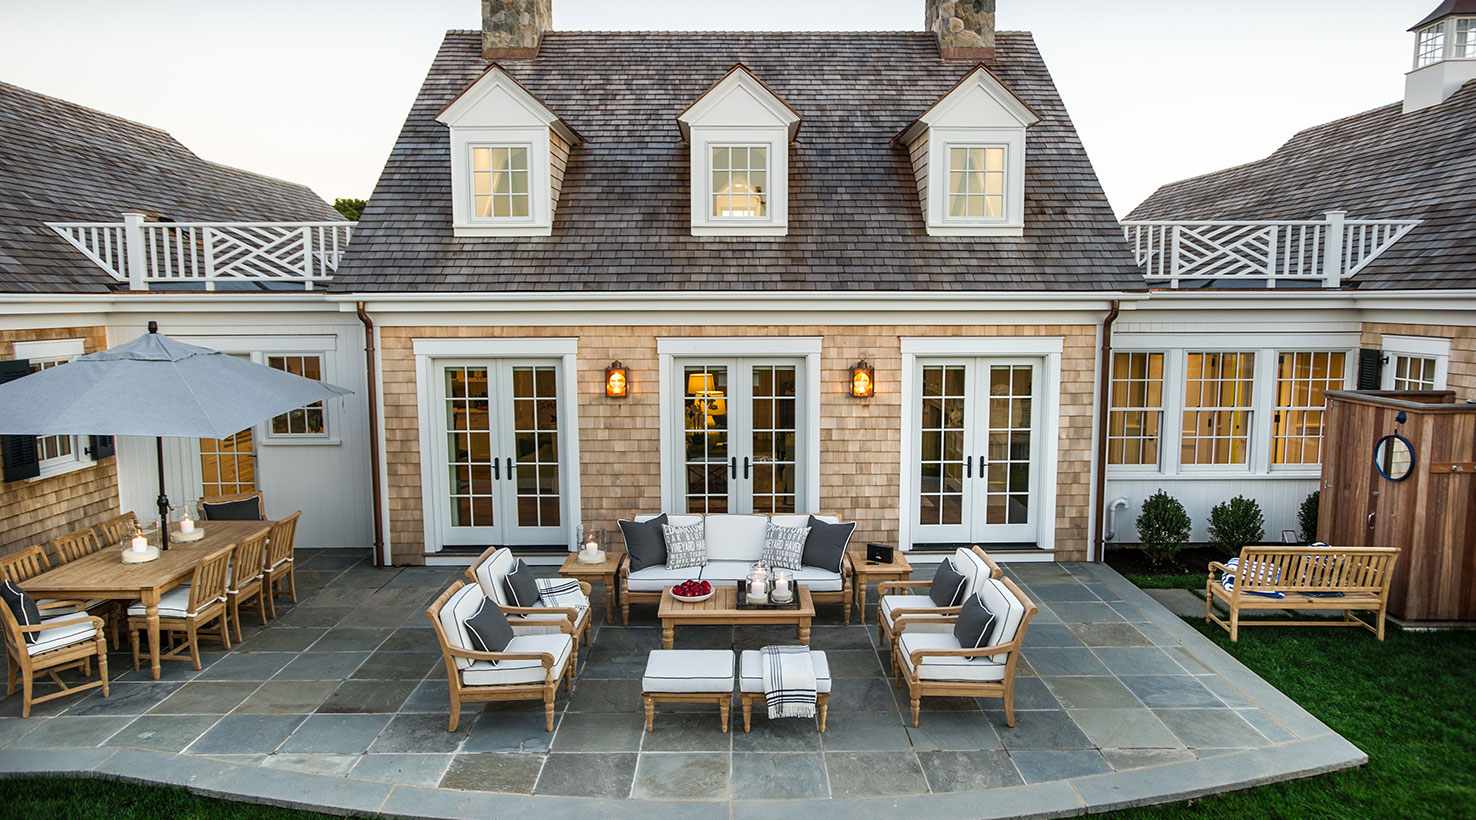 Fetching Patio Seating Dream Home 2015 Look Hgtv Sponsored By Hgtv Dream Home 2016 Location Hgtv Dream Home 2016 Kitchen curbed Hgtv Dream Home 2016